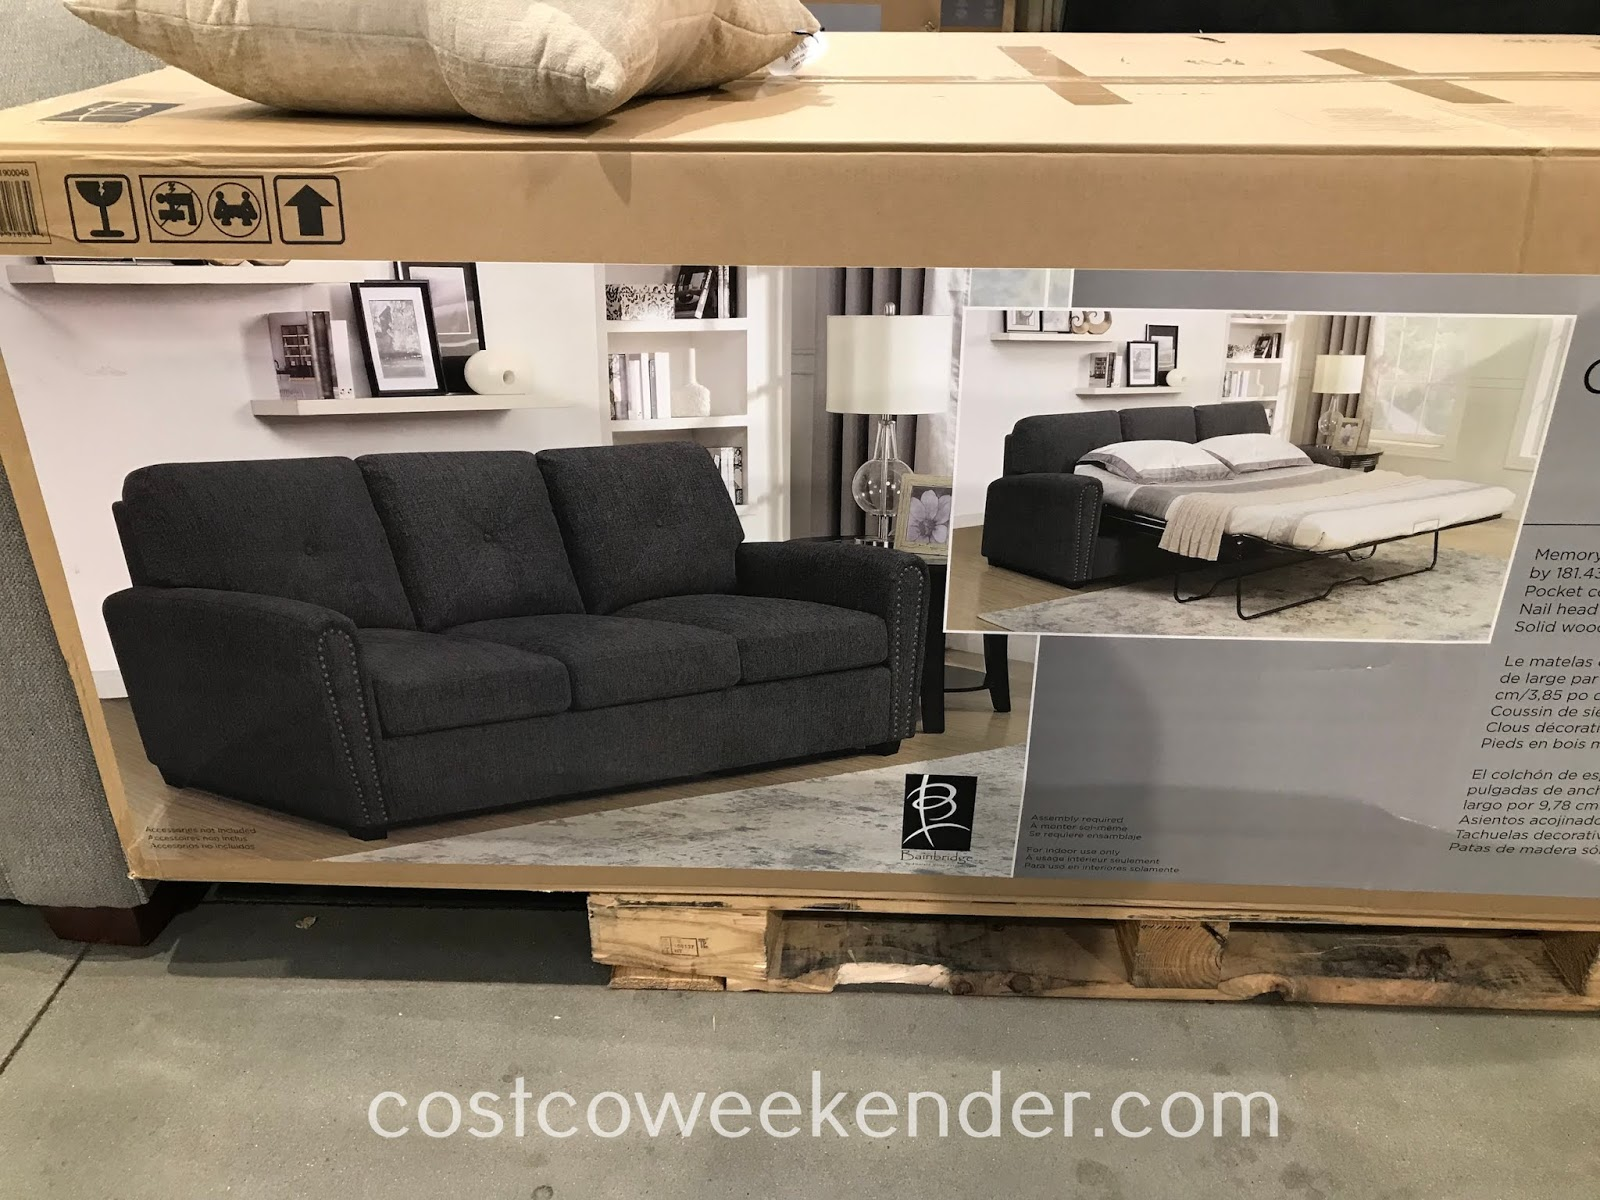 Costco 1900048 - Bainbridge Fabric Sleeper Sofa is as sofa bed your houseguests will love